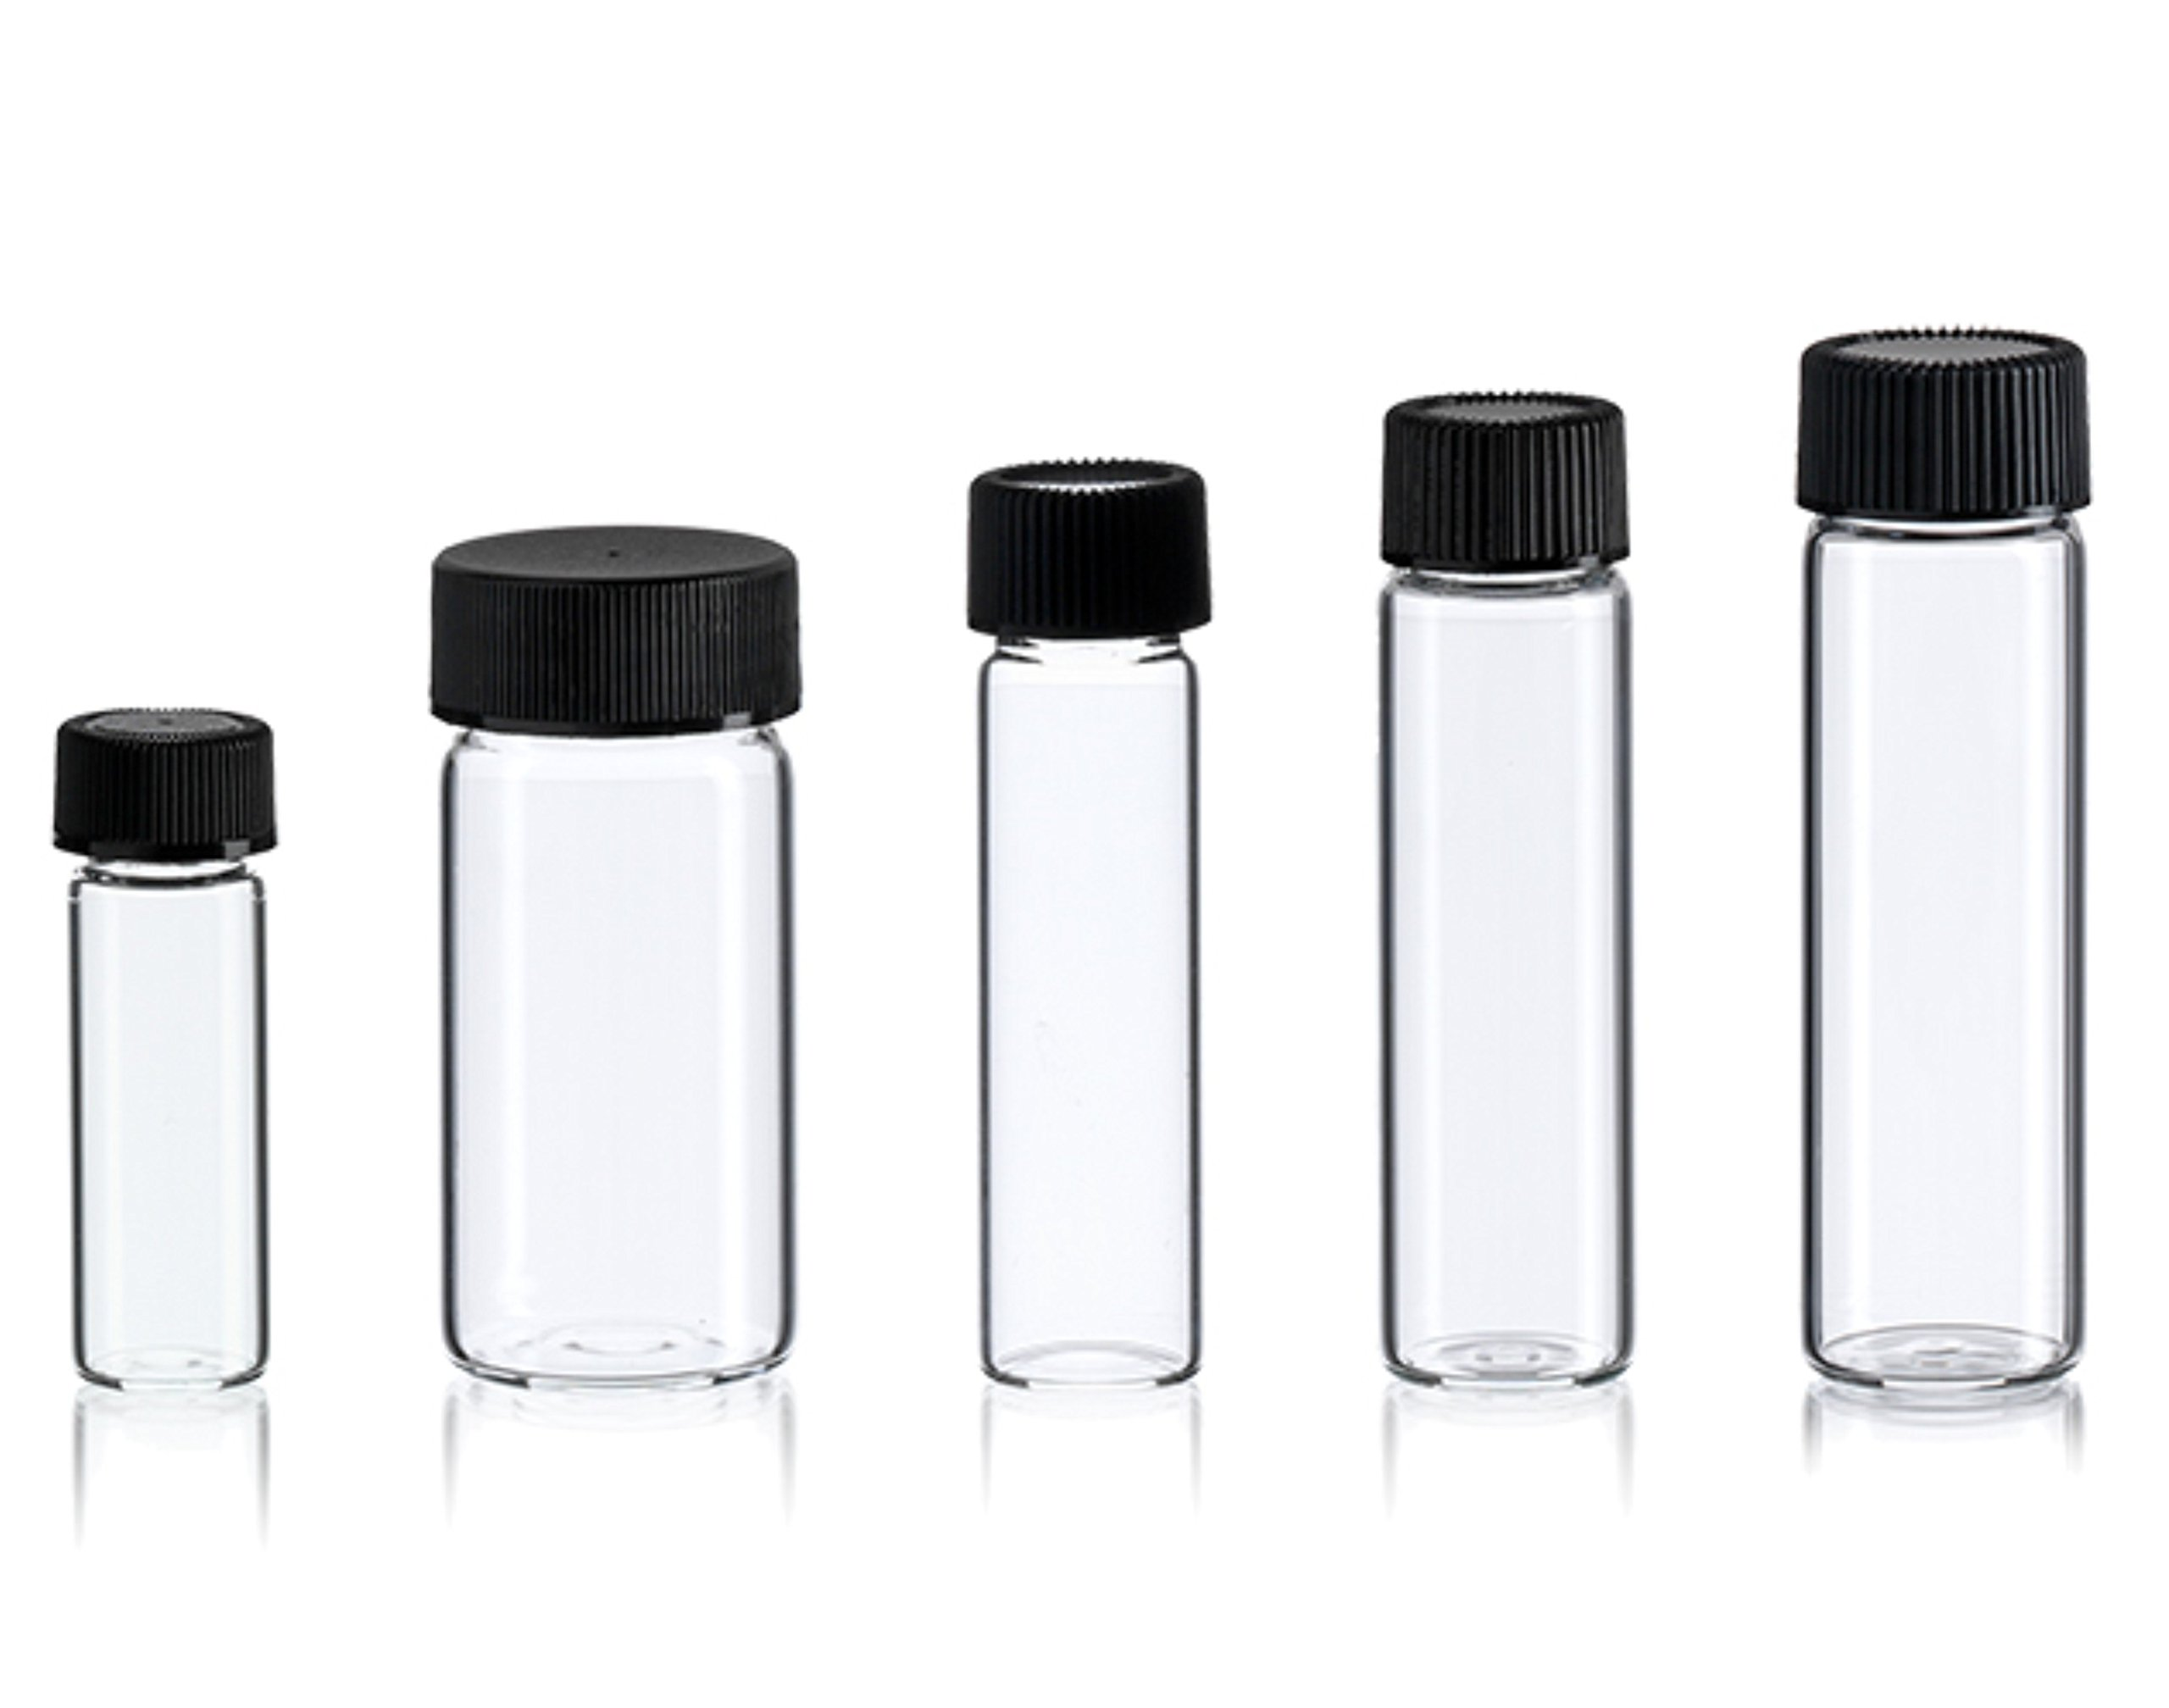 Magnakoys Medium Empty Clear Vial Bottle Assortment w/Caps 1 dram to 5 Dram for dry goods, essential oils, perfumes, and other liquids